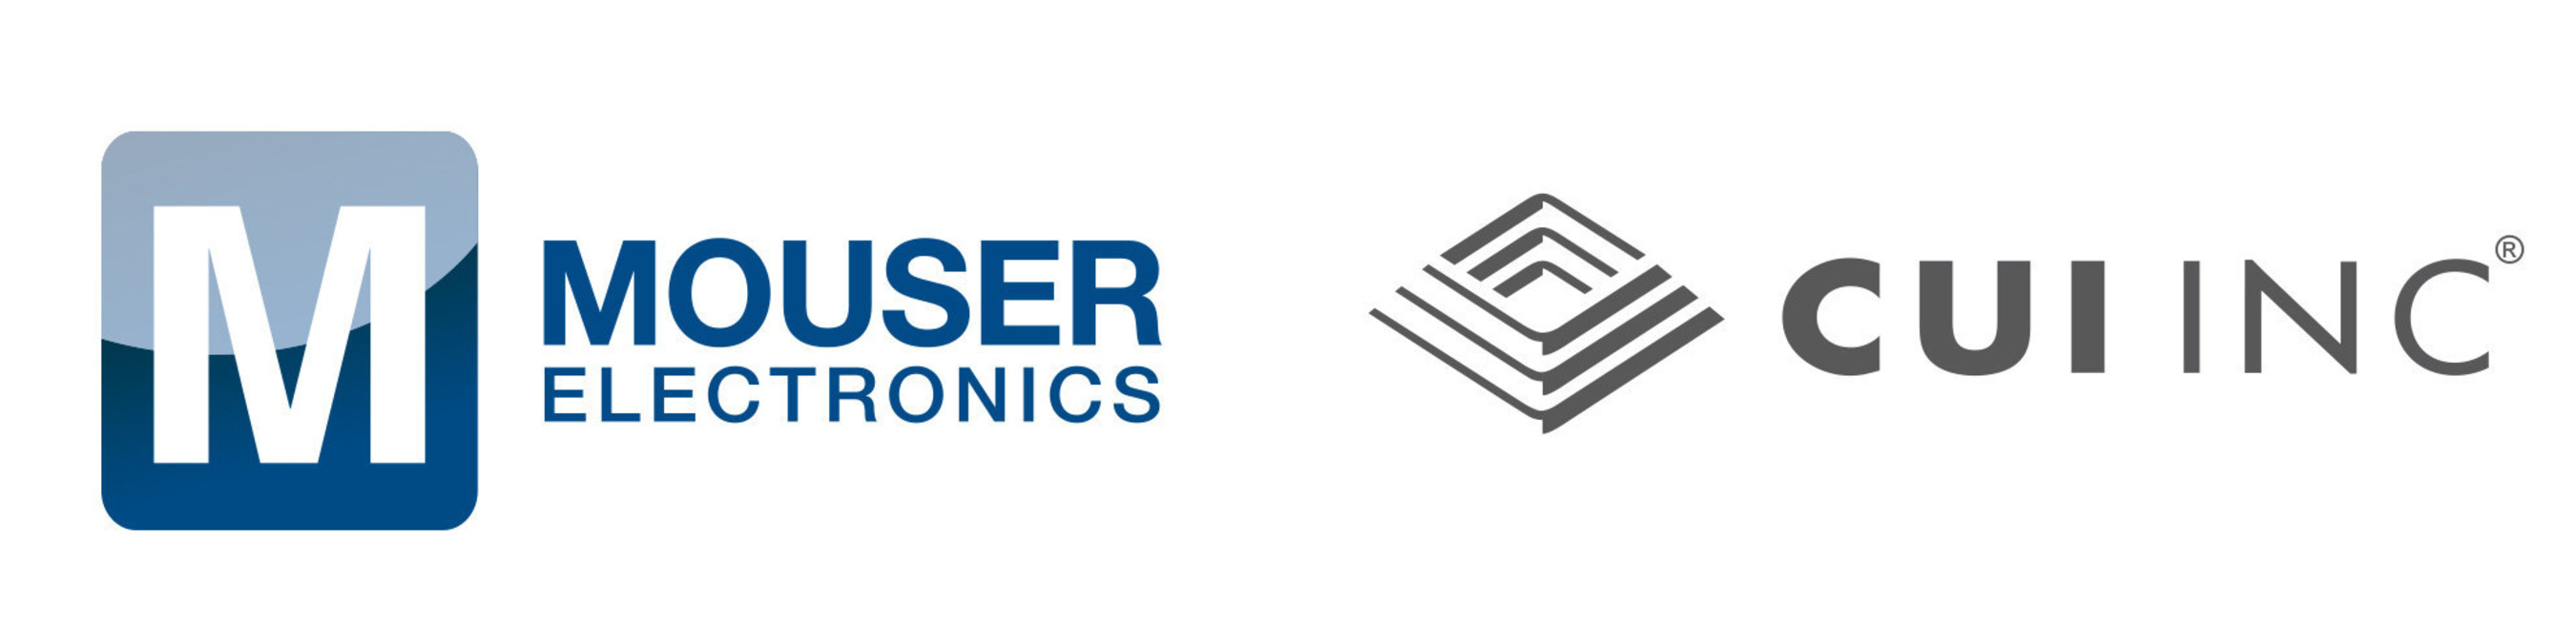 CUI Global, Inc.'s Wholly-Owned Subsidiary, CUI Inc, Signs Global Distribution Agreement with Mouser Electronics